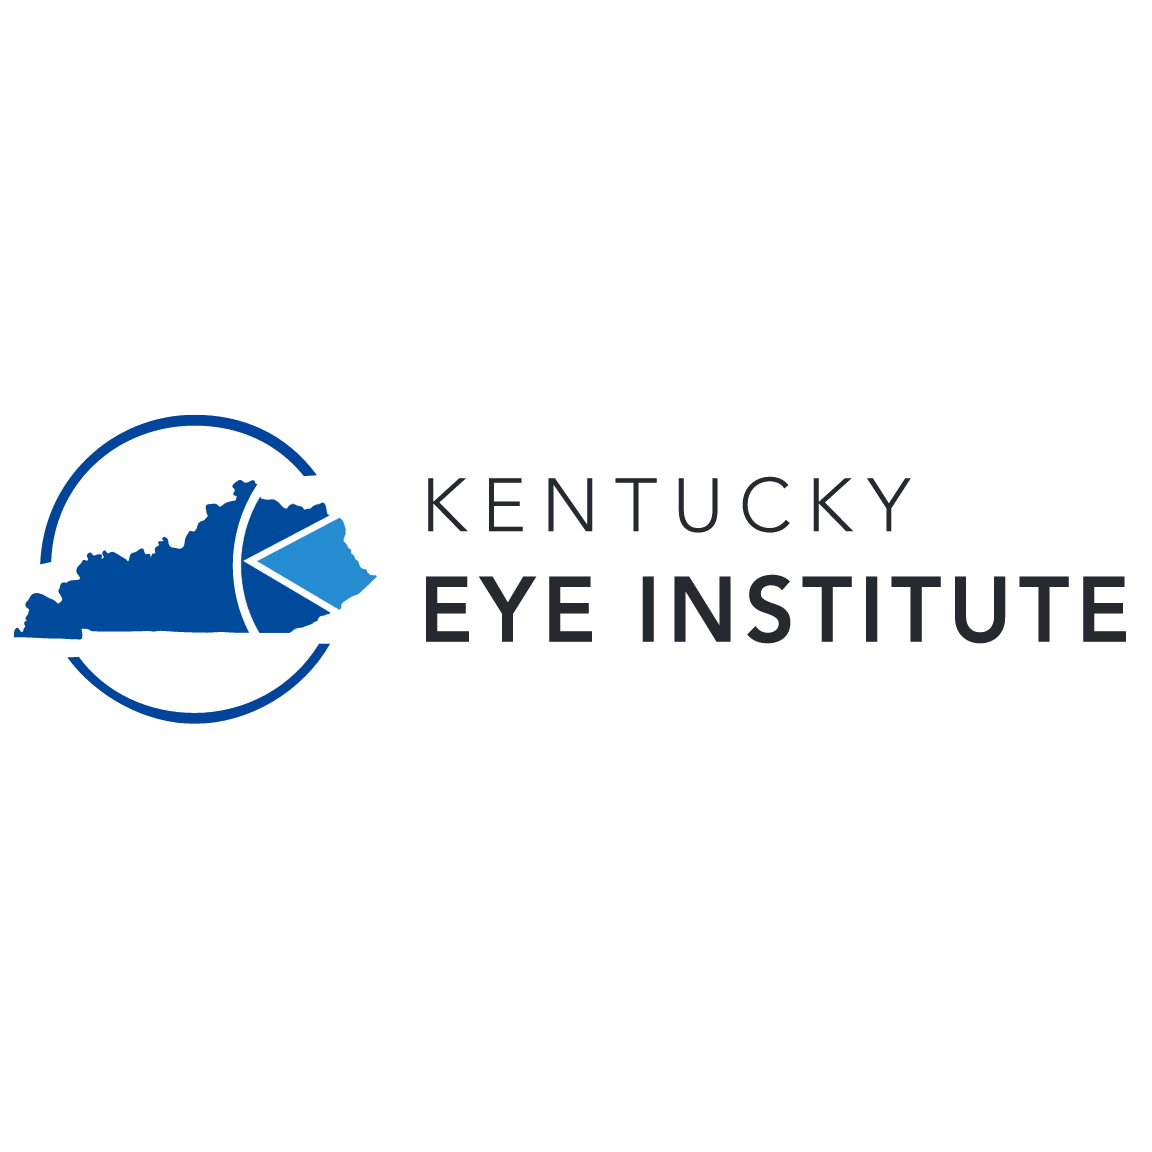 Kentucky Eye Institute